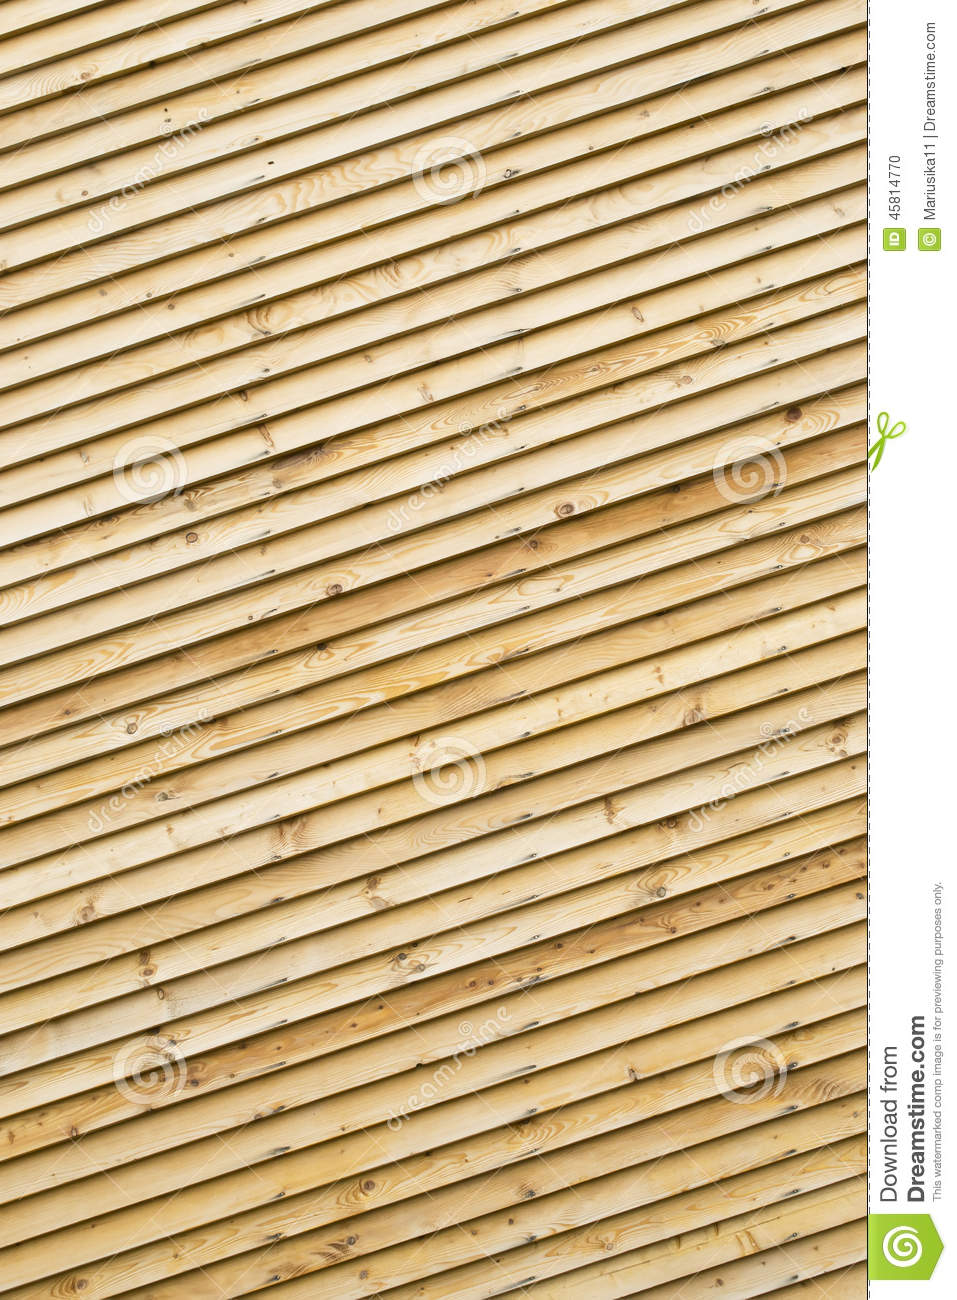 Wood paneling - Wood Paneling Stock Photo - Image: 45814770